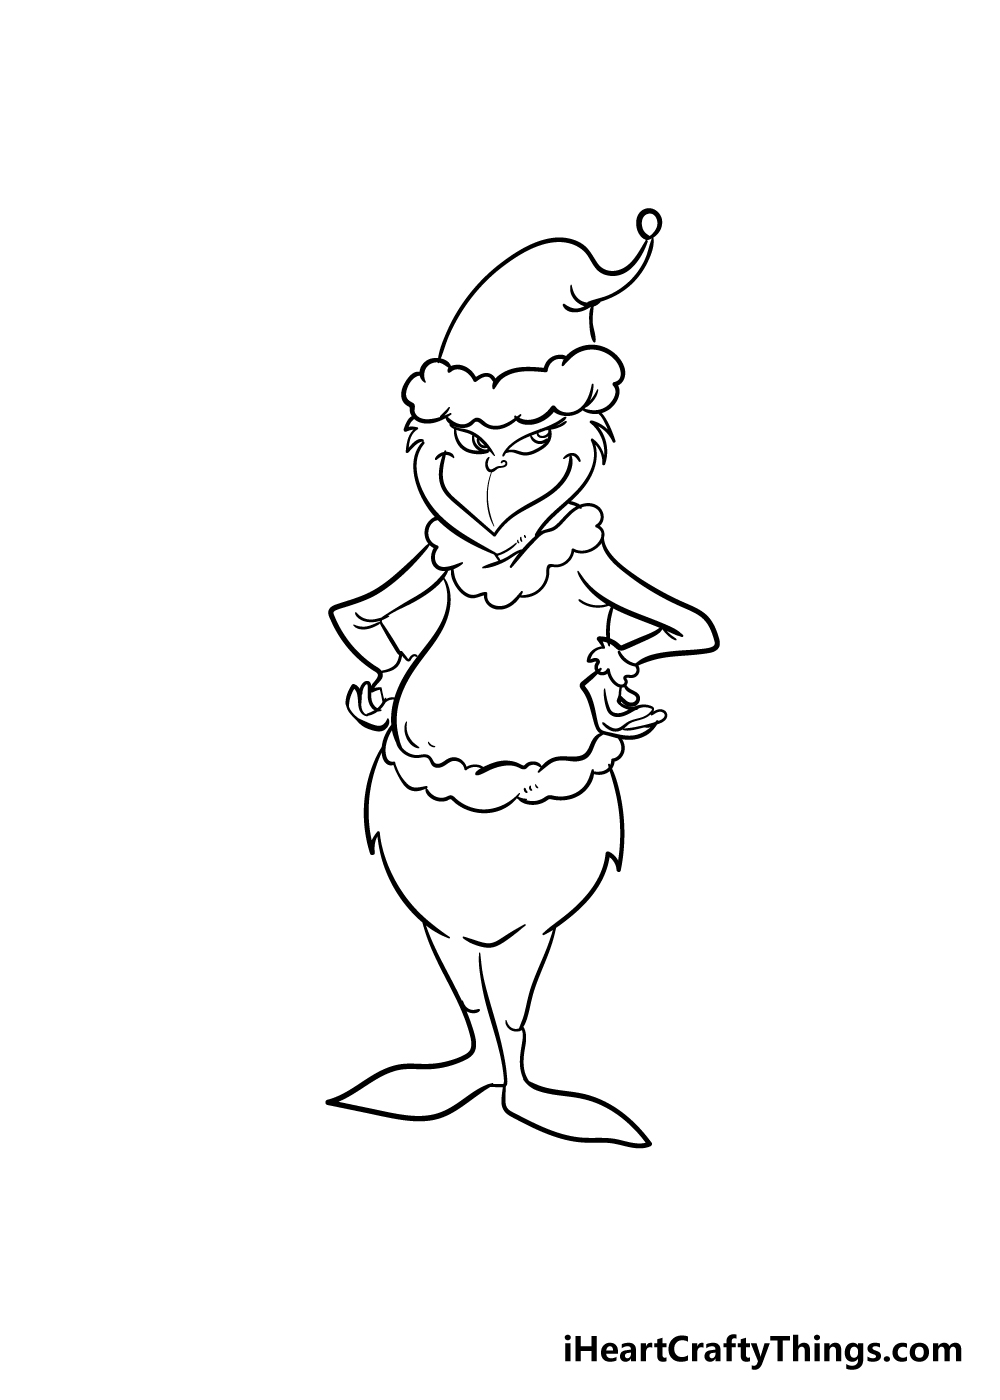 grinch drawing step 7